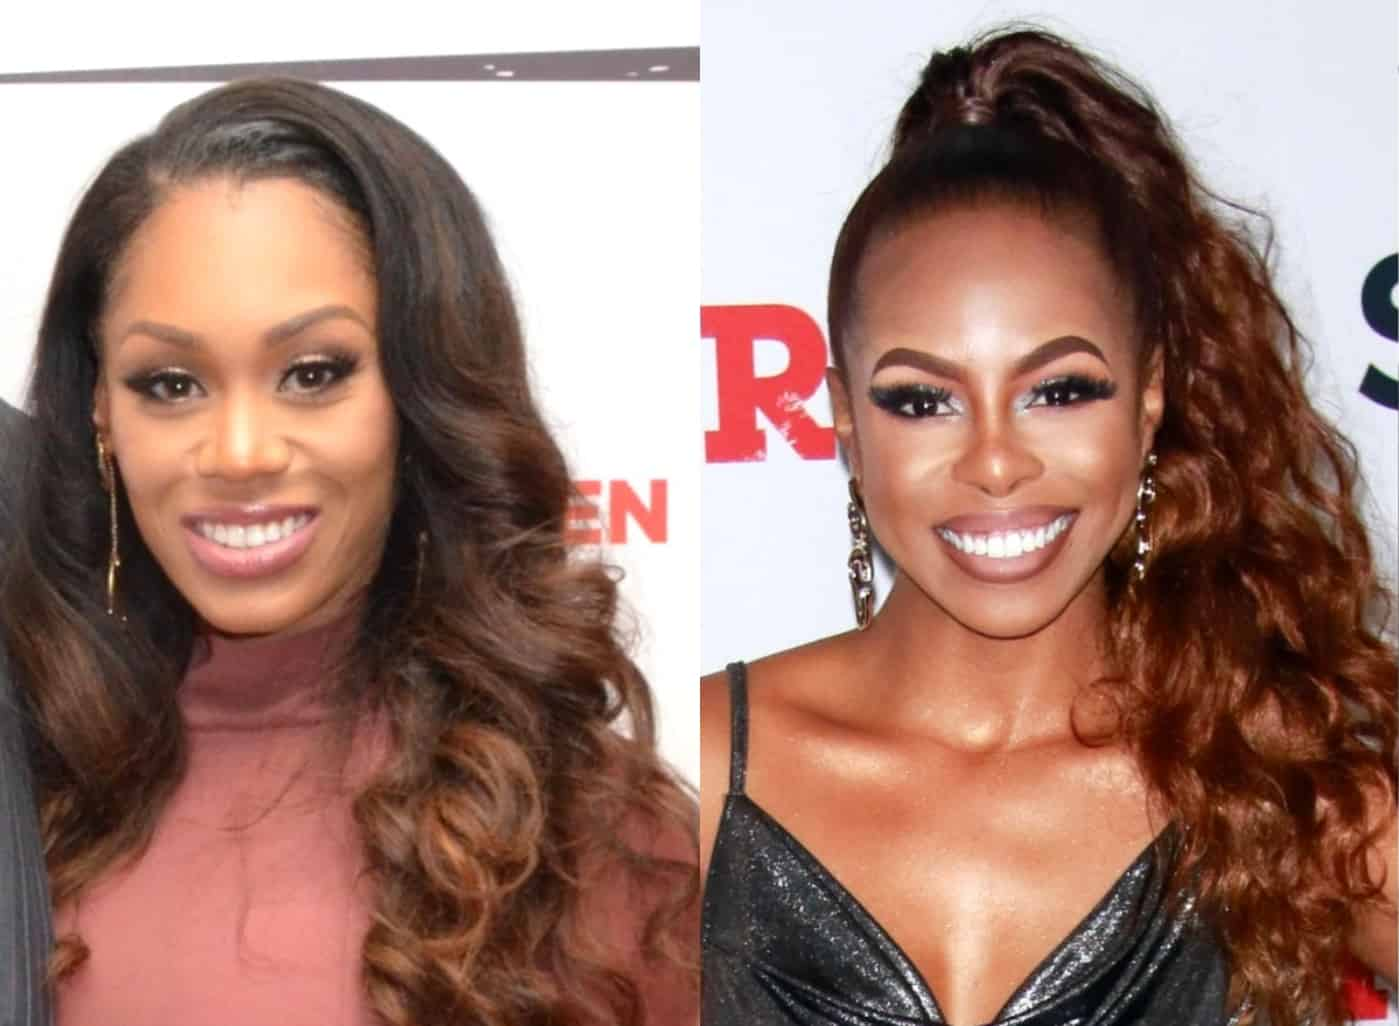 """Monique Samuels Shades Candiace Dillard's Claim of Being """"Traumatized"""" and Further Defends RHOP Reunion and Fight Behavior, Plus Candiace Defends Crying at the Reunion, Slams """"Toxic"""" Viewers For Enjoying Fight"""